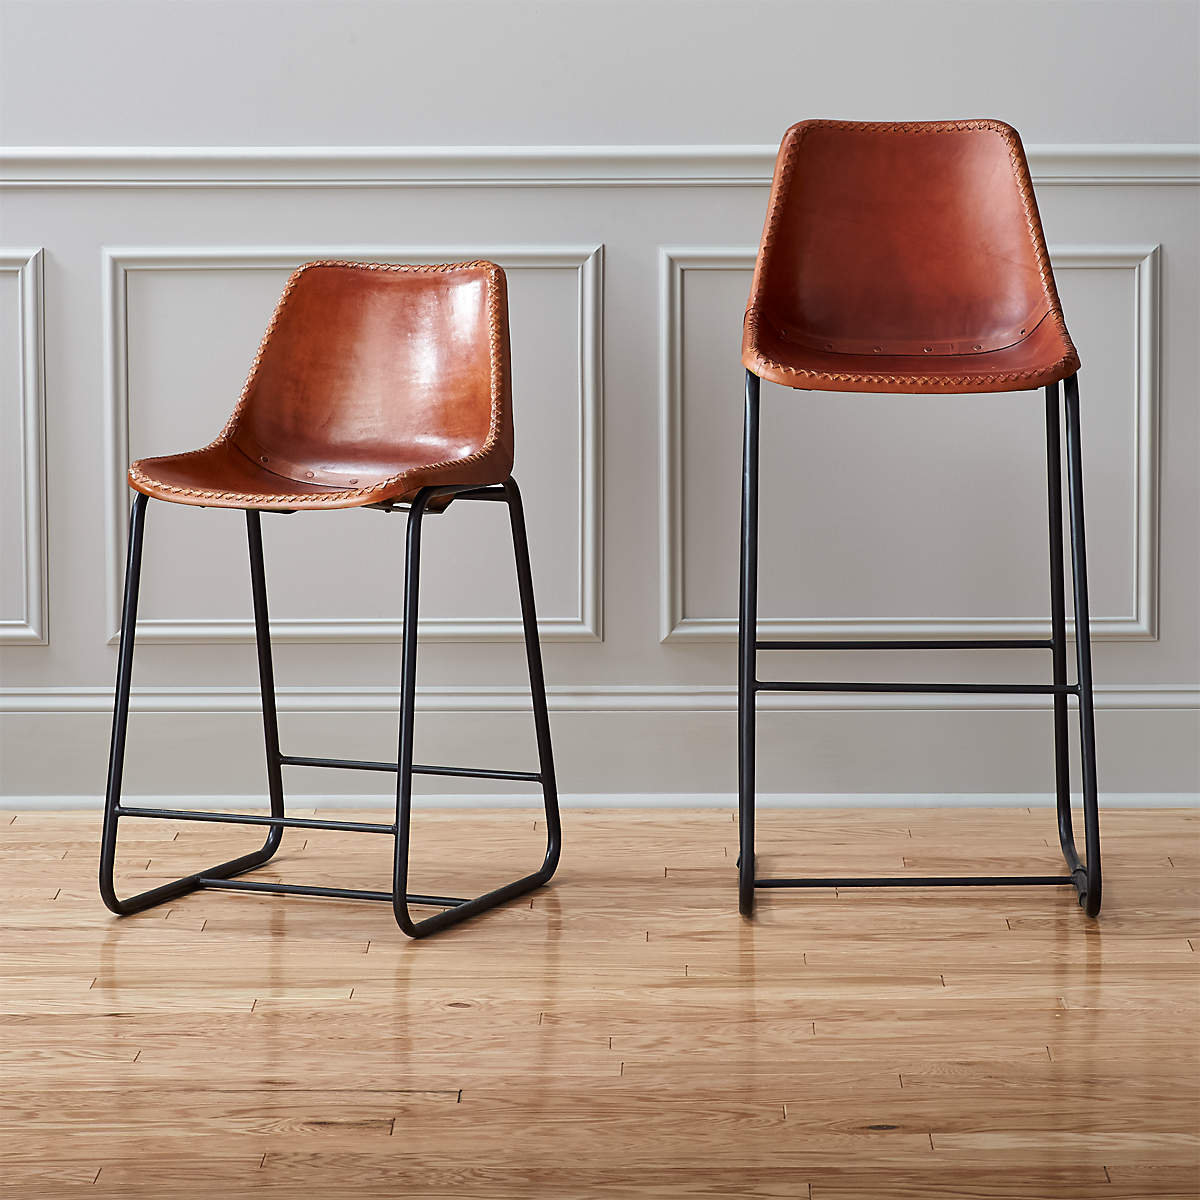 Roadhouse Saddle Leather Bar Stools- image 1 of 2 (Open Larger View)